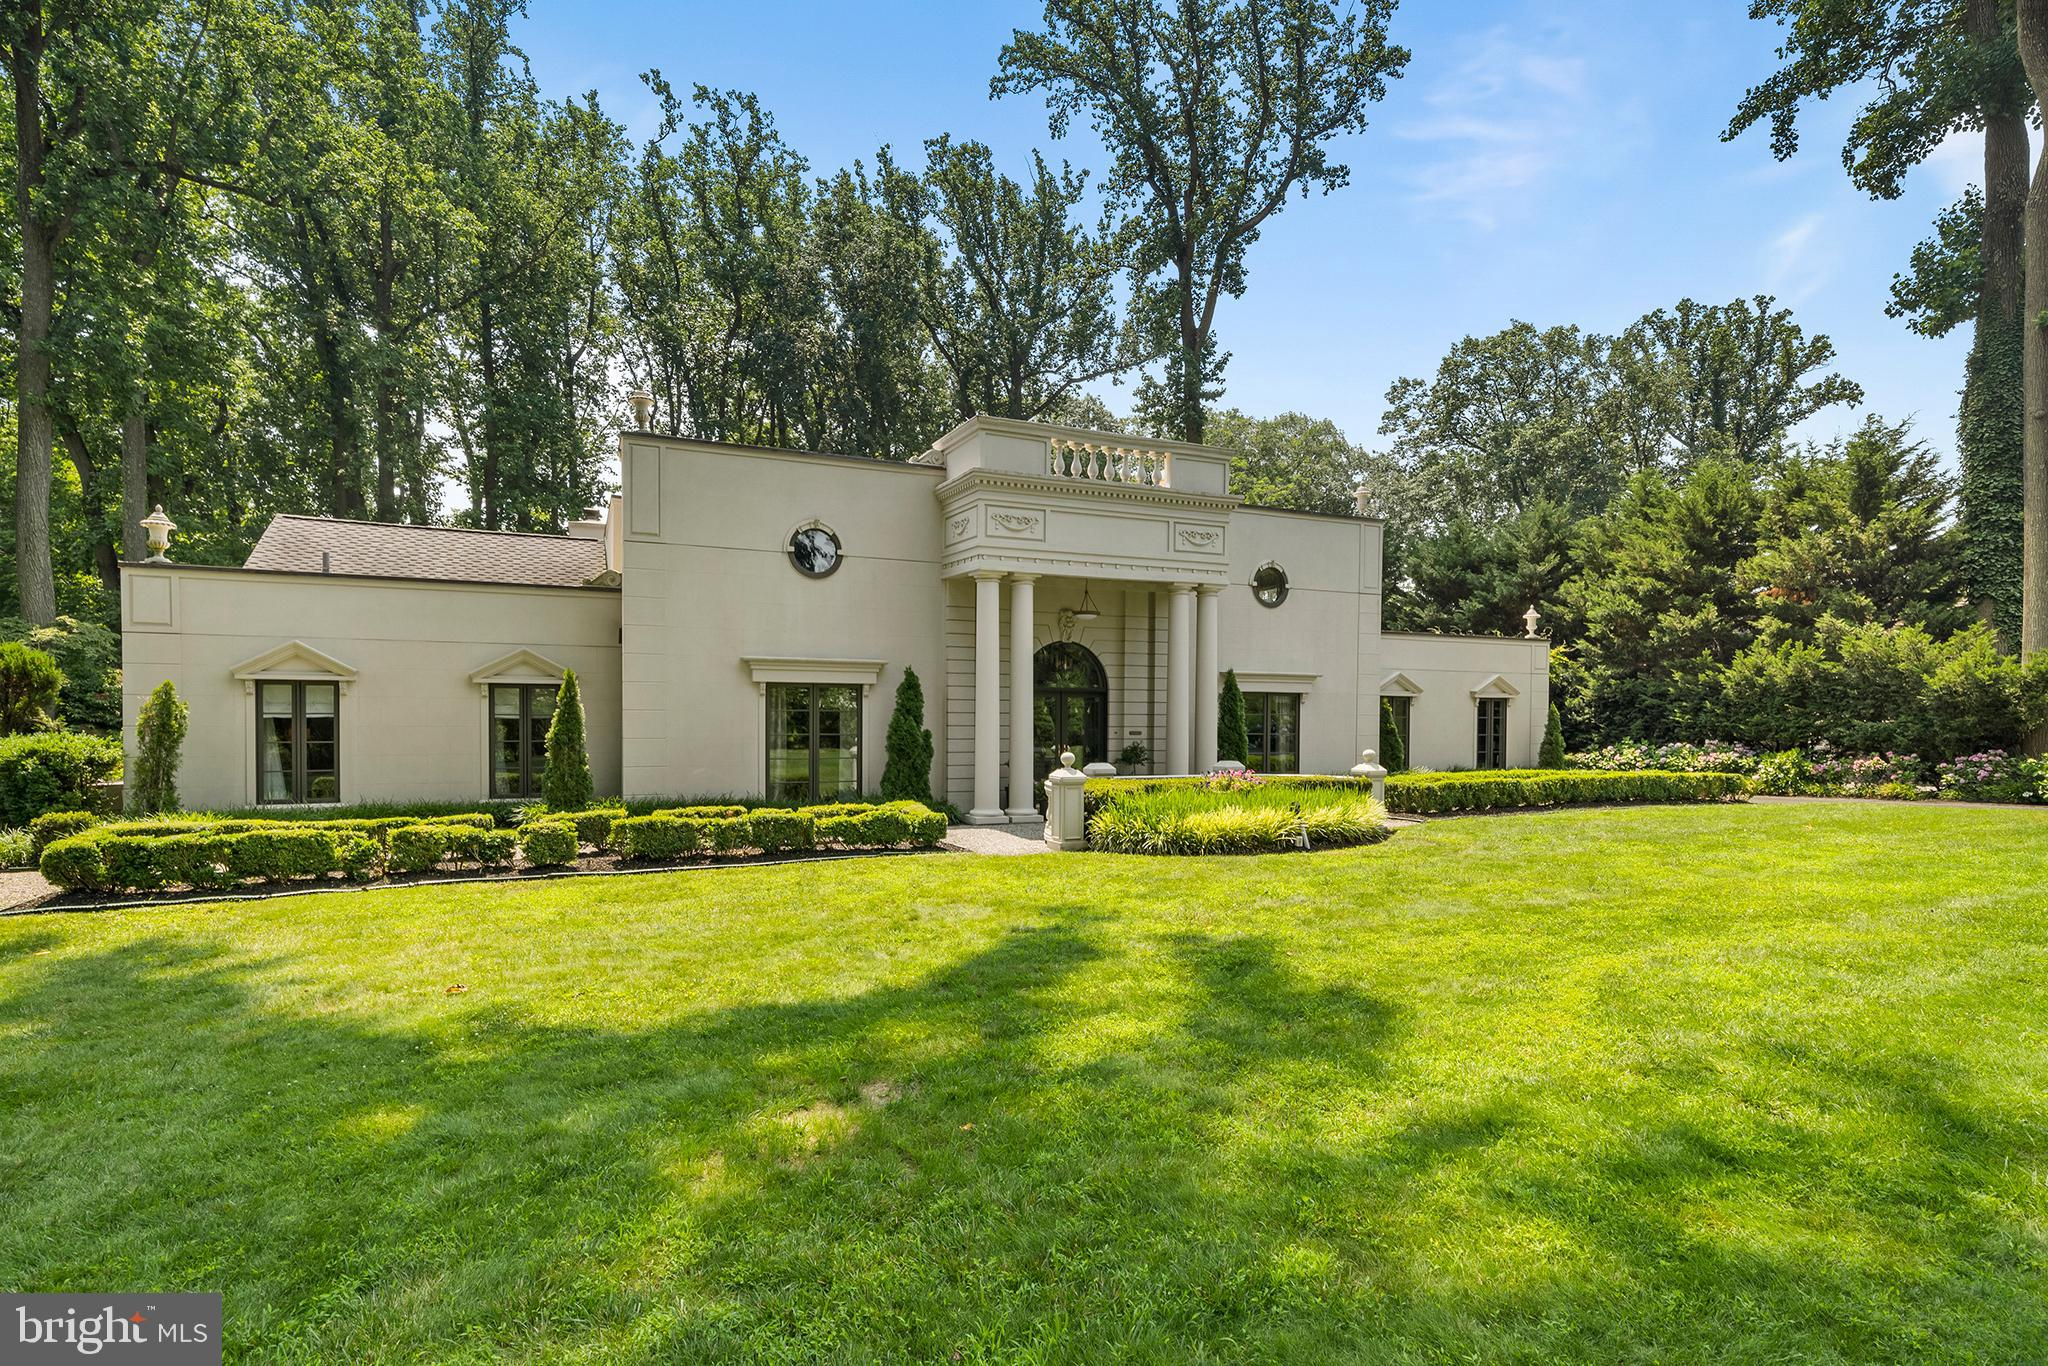 This 5 bedroom, 3 and a half bath residence located on Ridgewood road has rightfully been recognized in top design and décor publications for its stunning sophistication and 'Old Hollywood' style. Located on over 1.3 acres of land, this property boasts a formal garden complete with roses, boxwoods, hydrangeas and the towering presence of tulip poplars. Upon entry, guests are treated to a custom designed two story foyer painted by artist Alix Jacobs, featuring a black and gold turning staircase. The adjacent formal living room offers great natural light with views of the pool and access to the garden in addition to its wood burning fireplace. Also located on the main floor is the home's master bedroom, its accompanying marble floored bathroom and his and her walk-in closets. The master sits just feet away from a small library, a cozy den area, and a skylit kitchen with patio access. Outfitted with Gaggenau appliances, Bulthaup cabinetry and tastefully hidden appliances, this kitchen is any chef's dream. Migrating upstairs one finds an additional three bedrooms and two full baths, perfect for children and/or guests. Each bedroom has a great view of the garden/pool area below, with an upstairs sitting room having floor-to-ceiling windows for outdoor viewing pleasure. Outside the residence, owners are able to entertain on a sprawling flagstone patio, or in the in-ground salt water swimming pool. Located in the heart of the prestigious Lower Merion school district, this property is just minutes from the shopping/culinary offerings of the Main Line, all while being just a 20 minute commute to Center City Philadelphia.